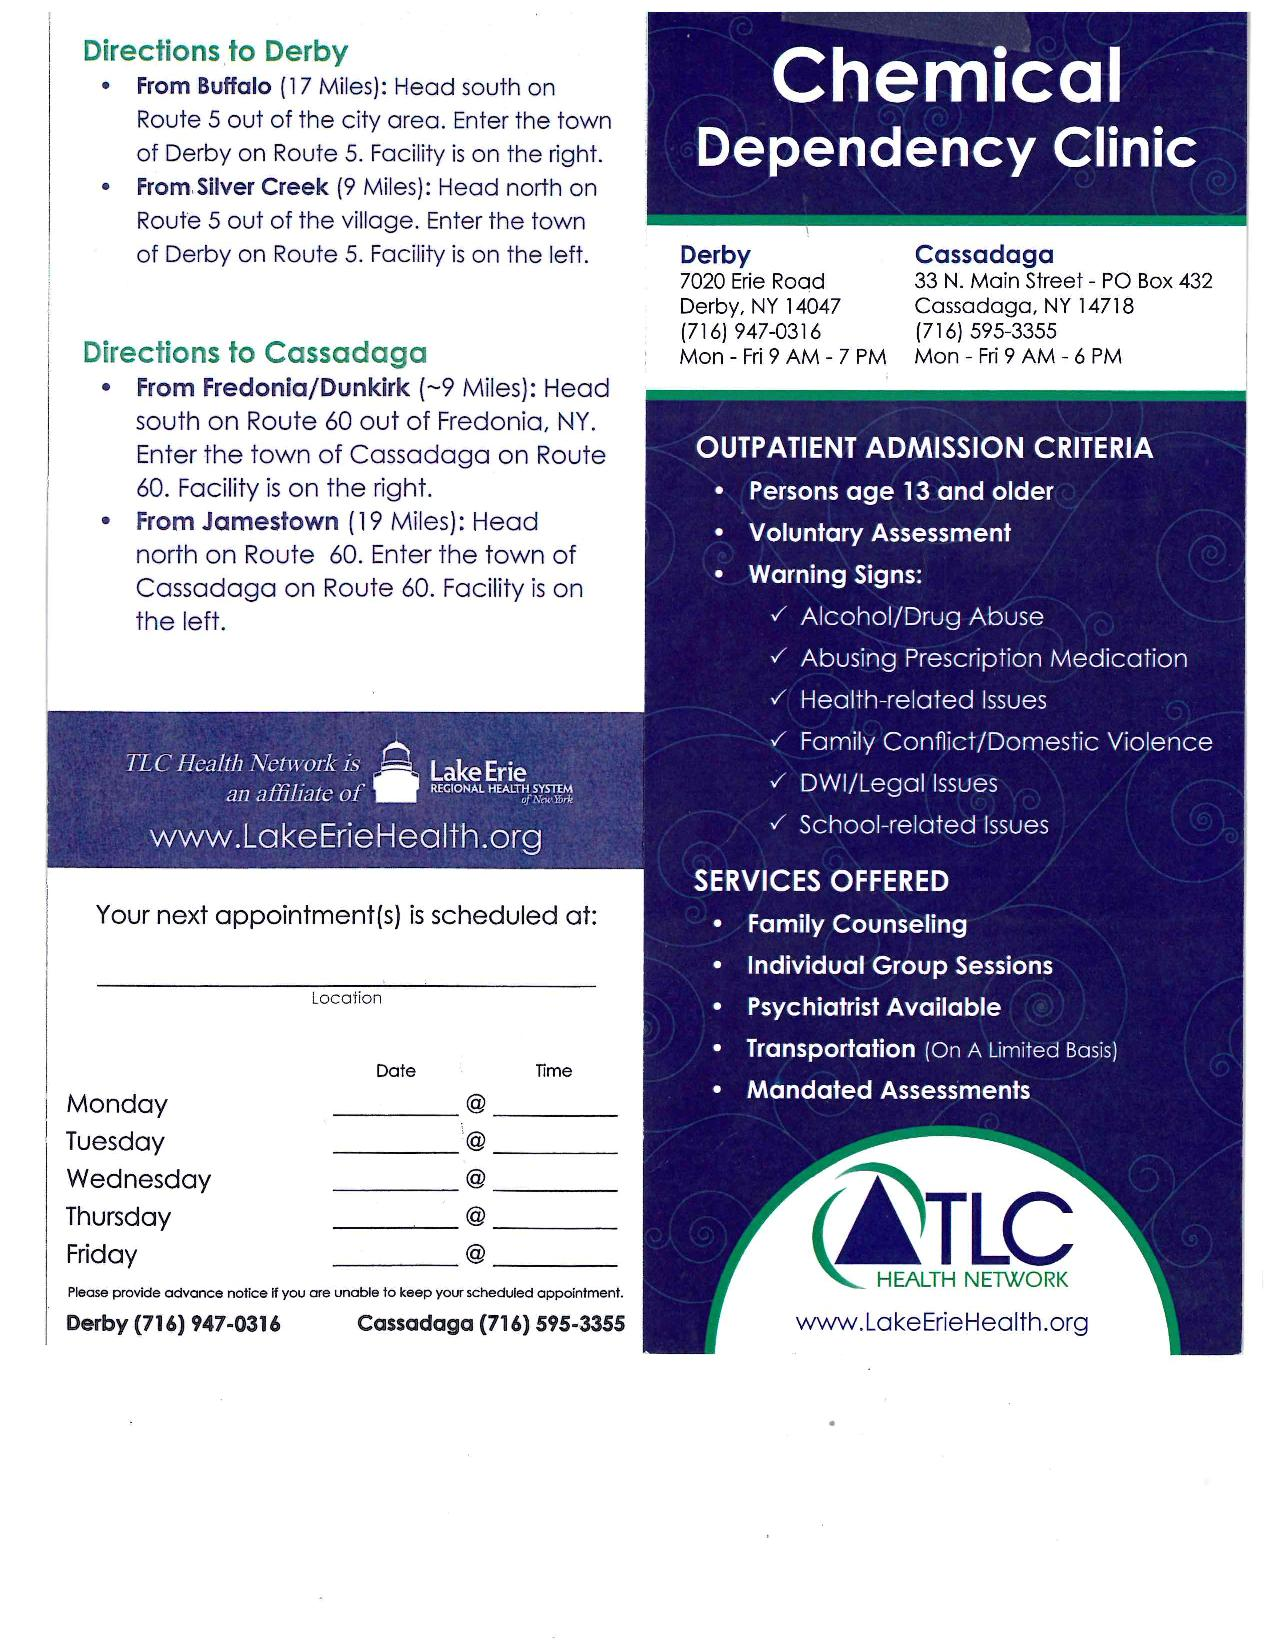 Chemical Dependency Clinic page 001